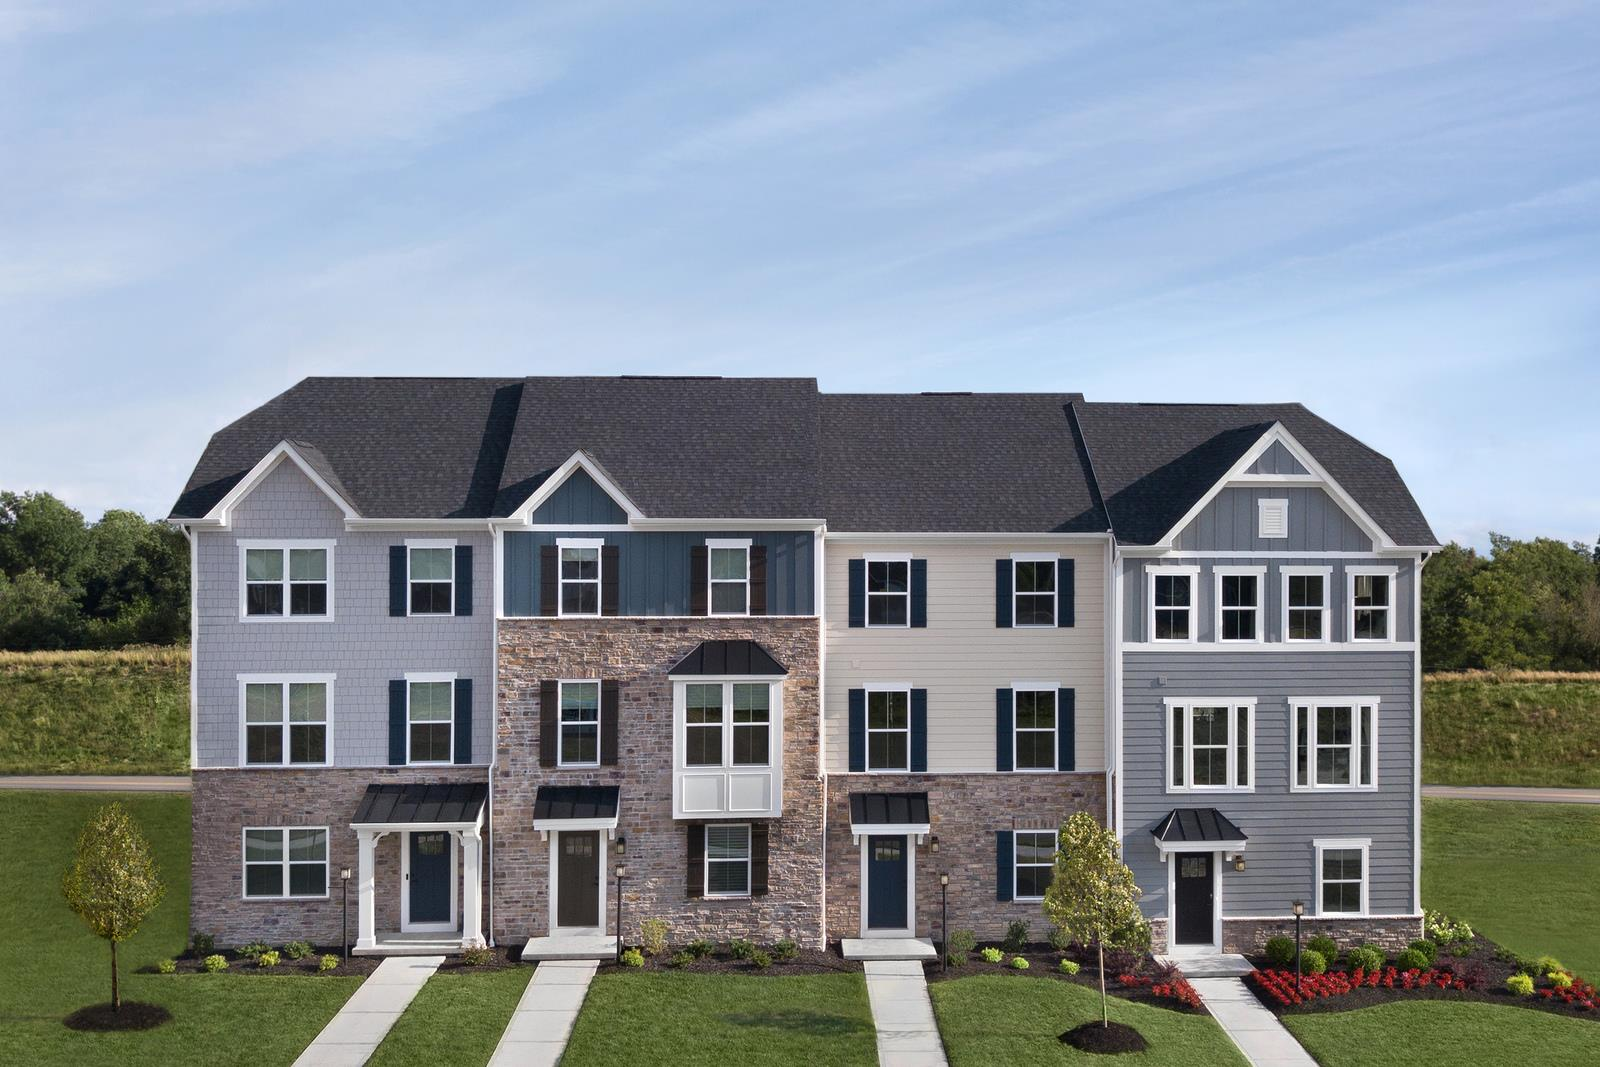 Laurel Grove in Pine Township, PA | Prices, Plans ...